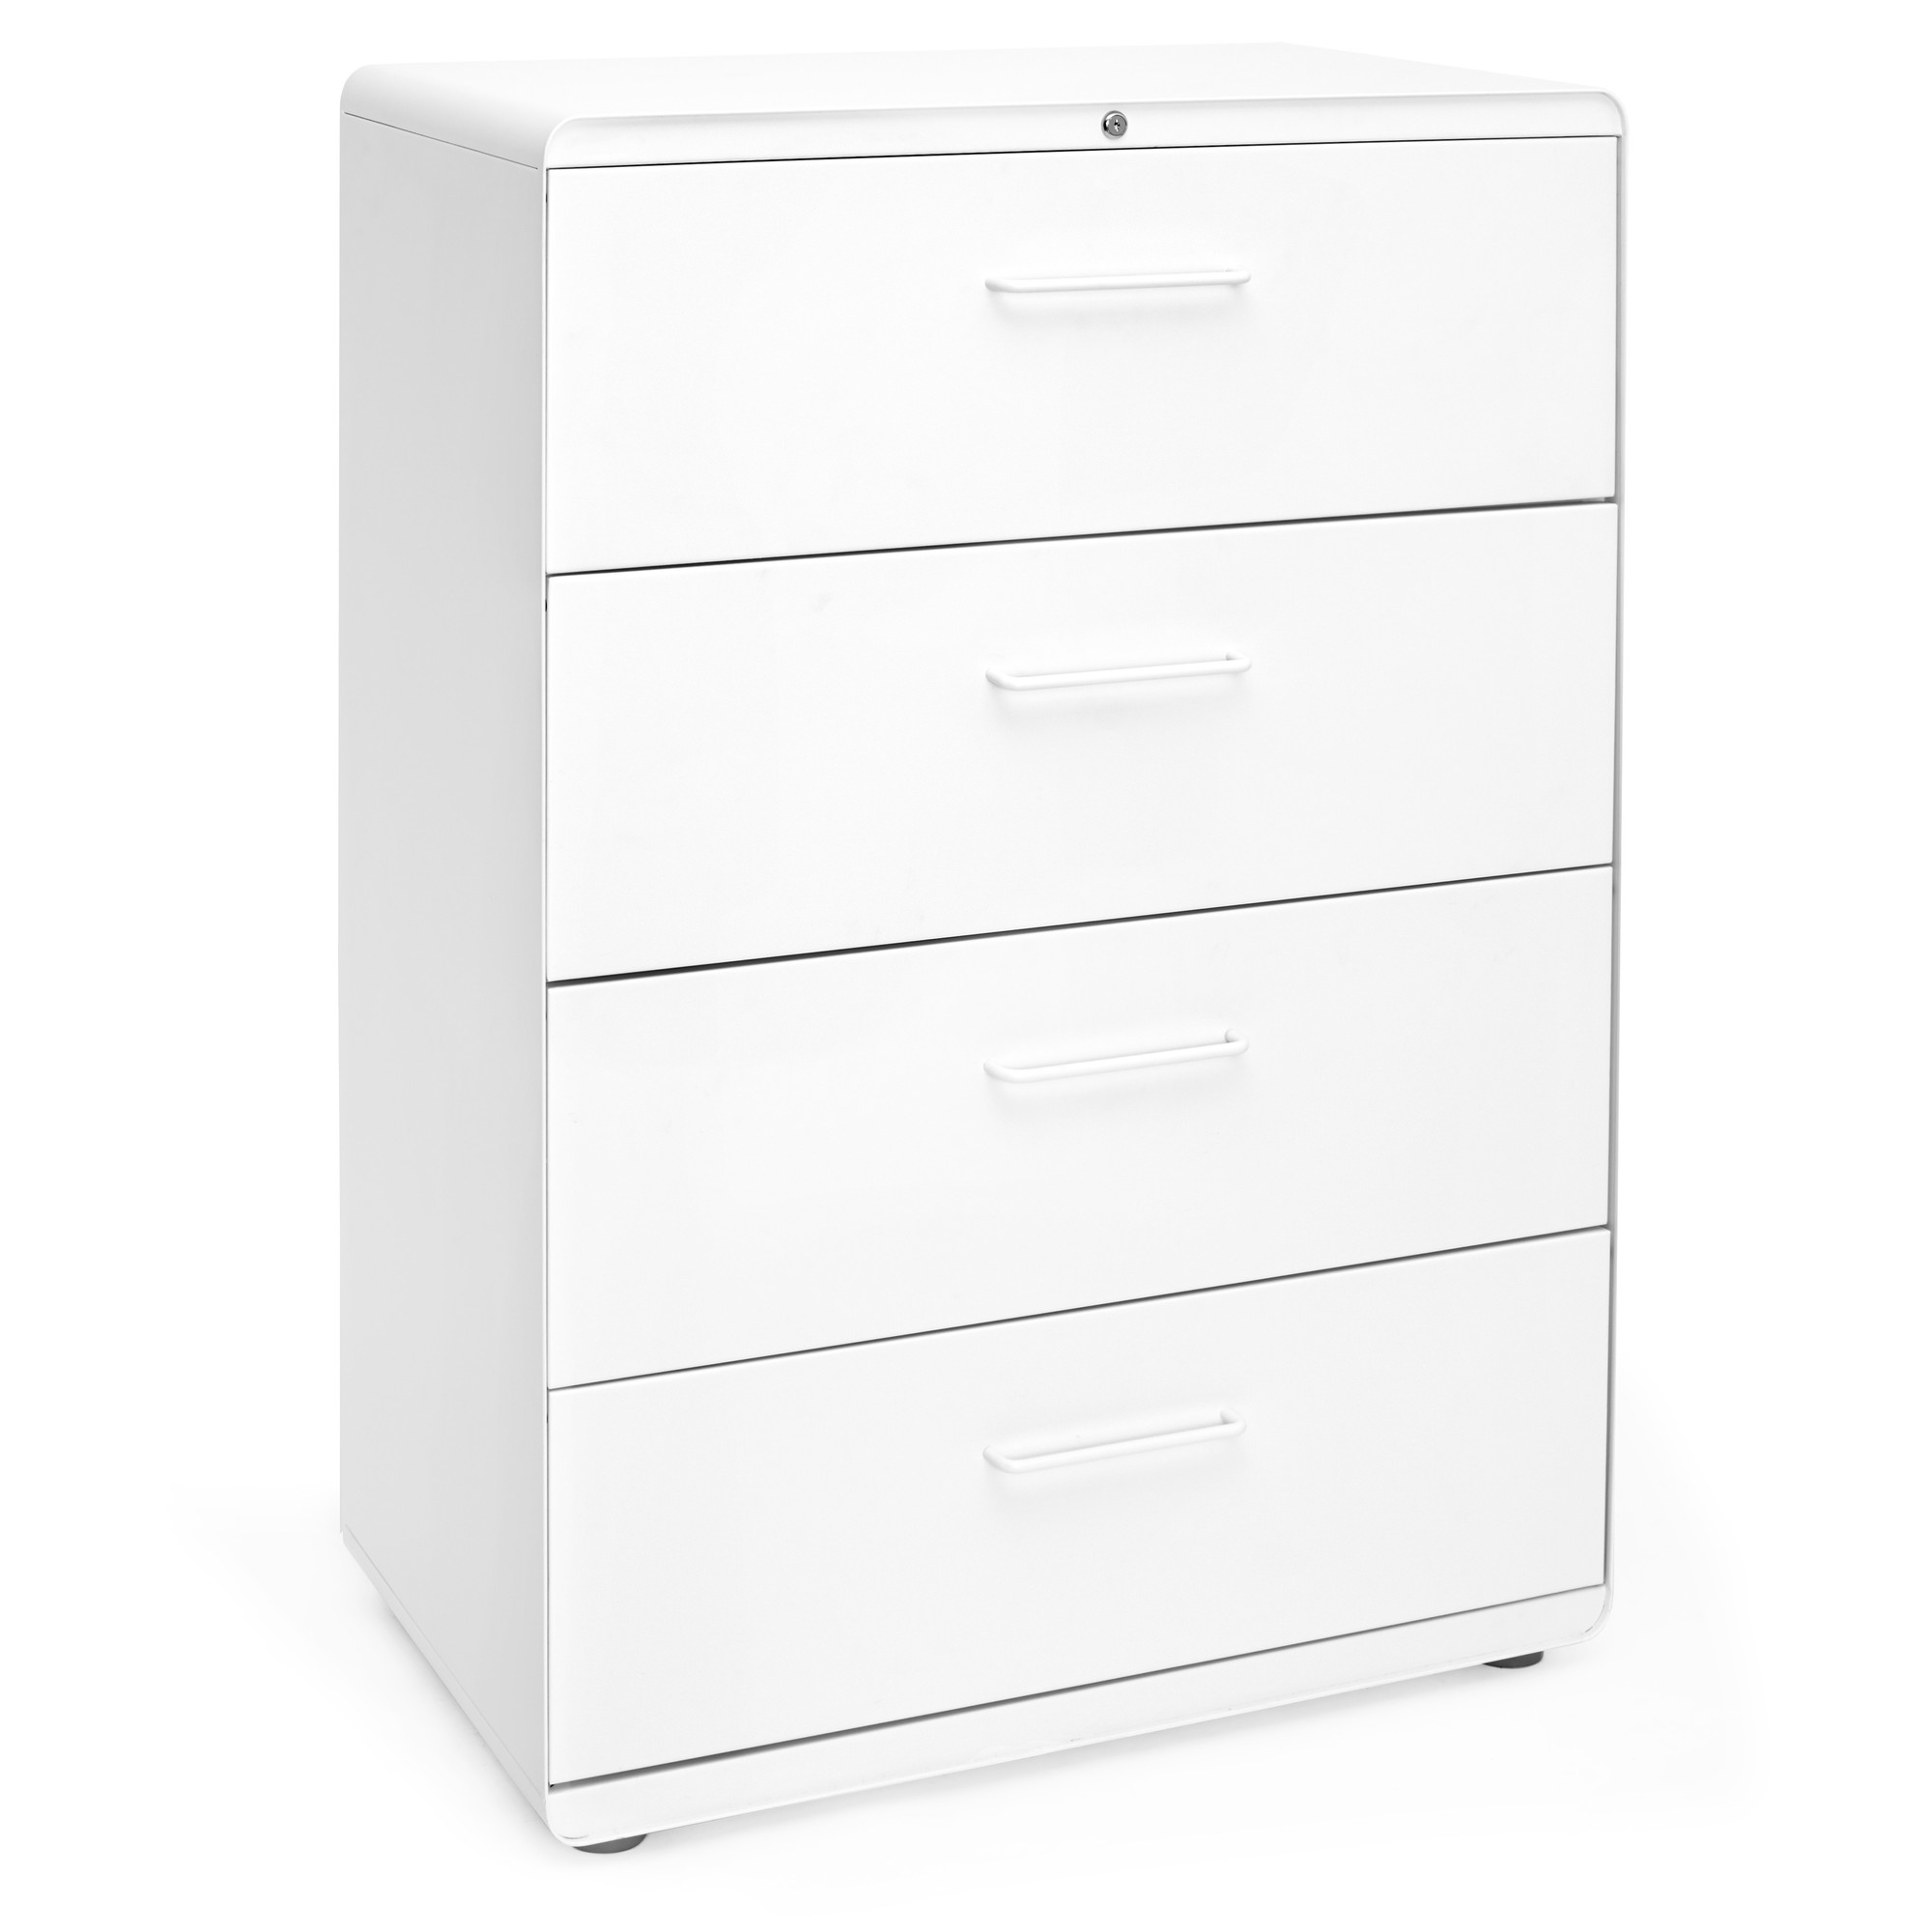 Exceptional Images. White Stow 4 Drawer Lateral File Cabinet ...